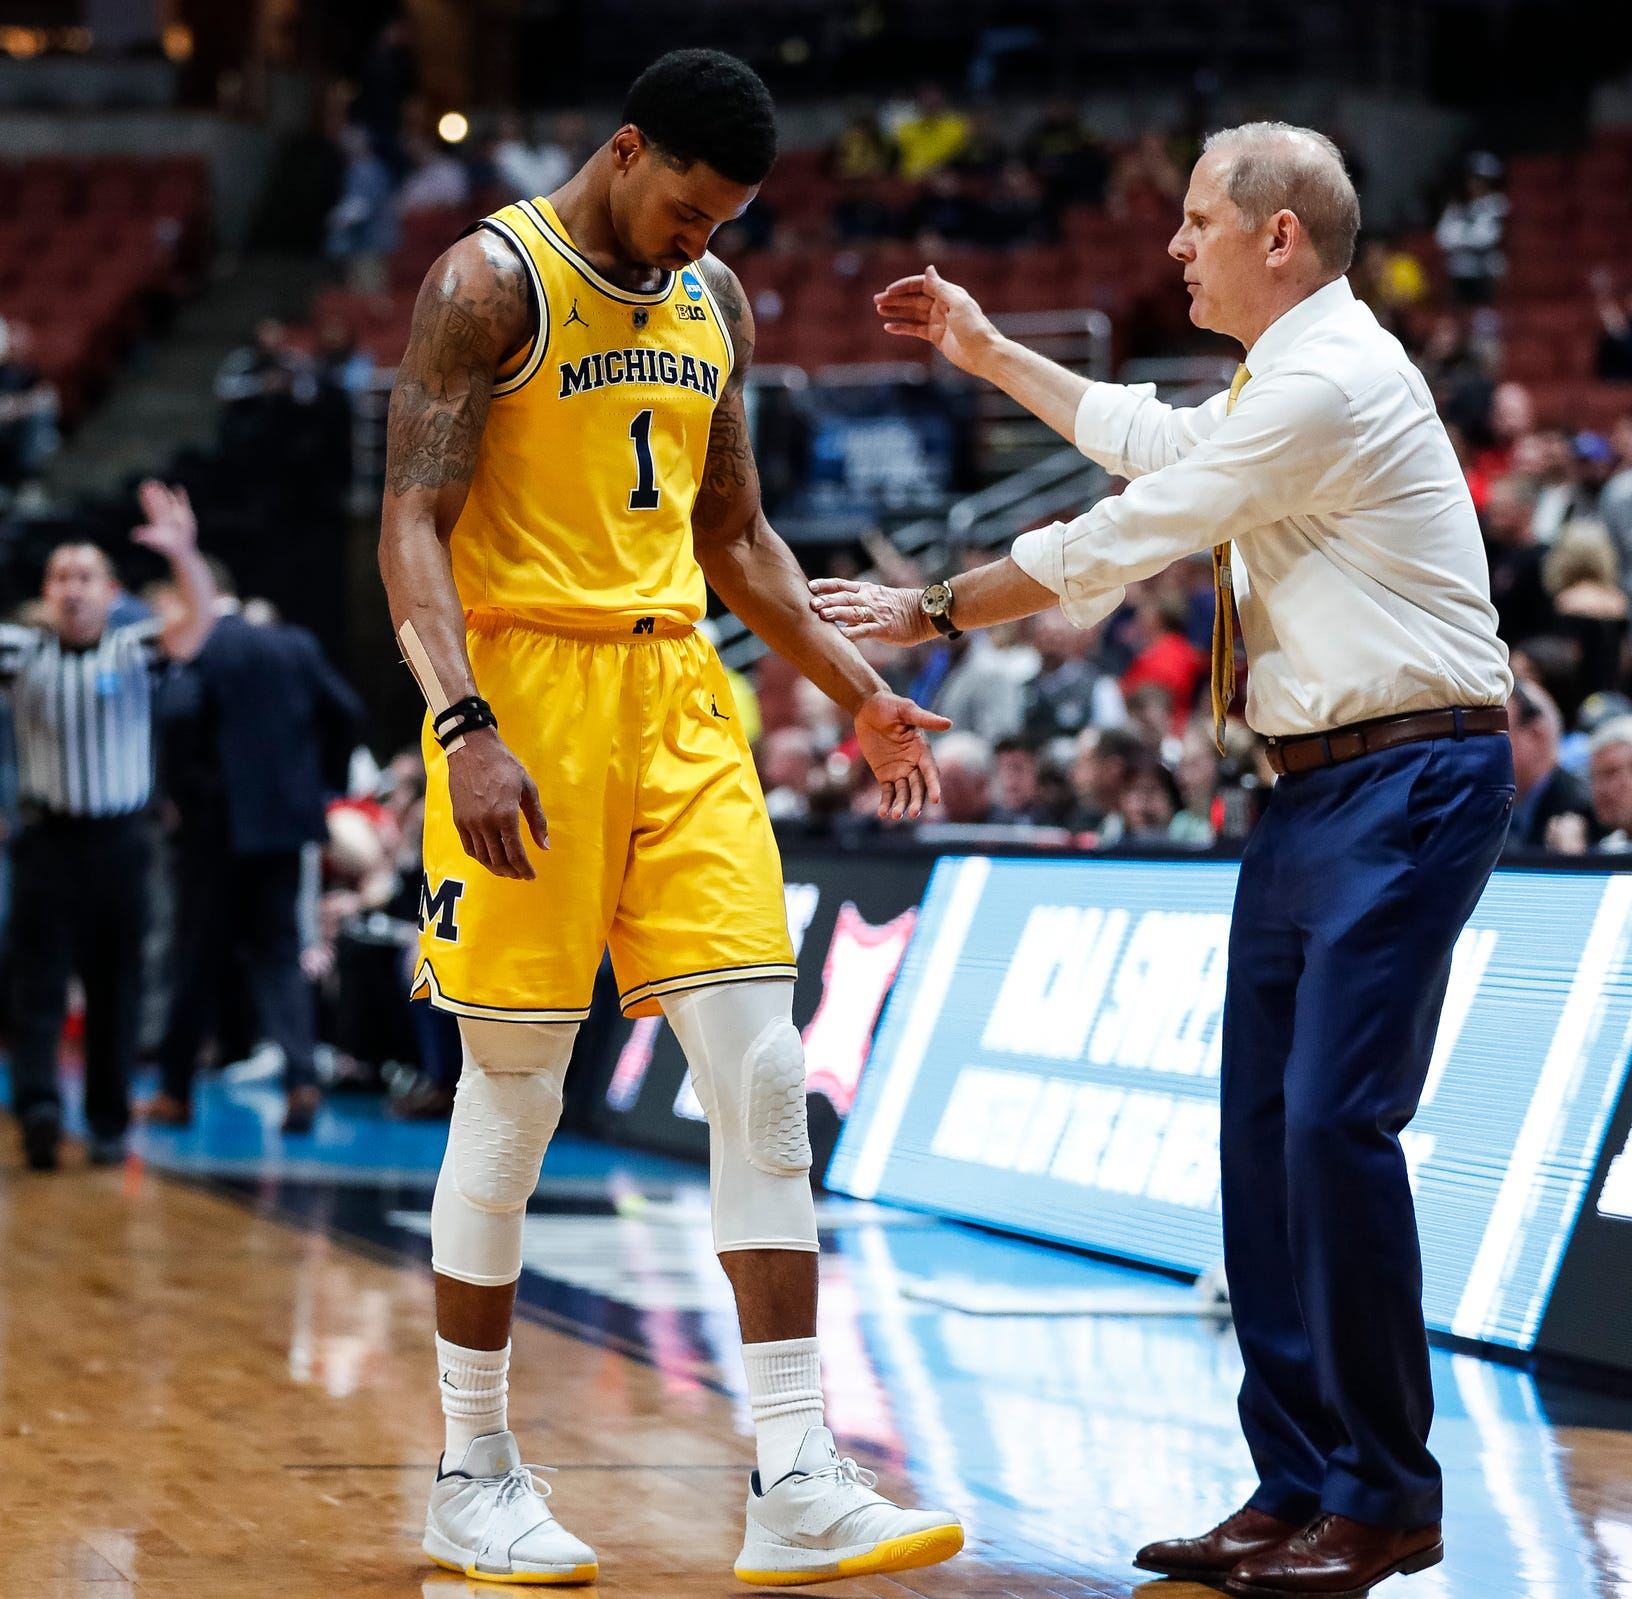 Michigan basketball's season ends with thud. Here's how team must evolve